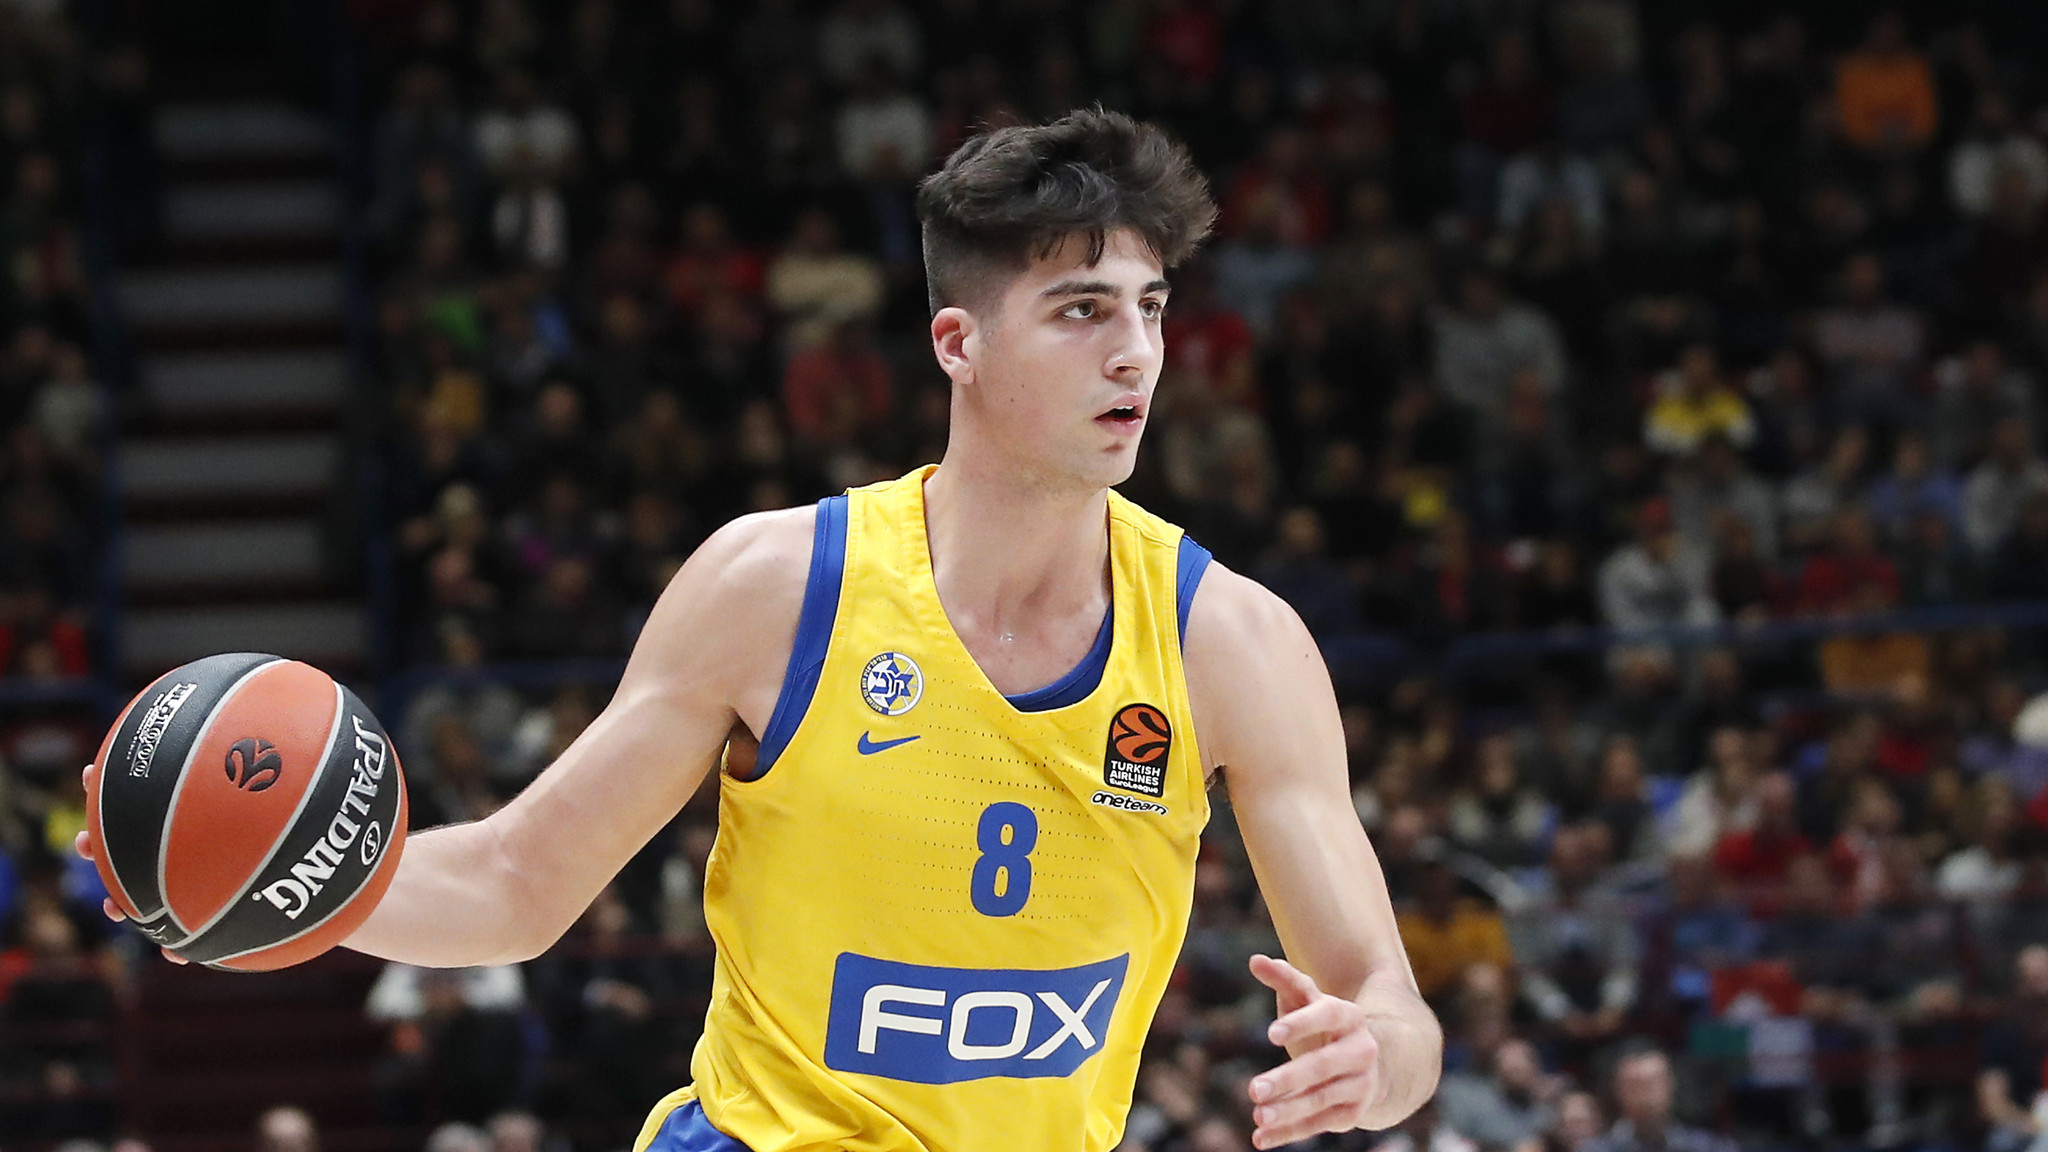 A look-ahead to 2020 in the Sports World: Filip Bondy dusts off his crystal ball